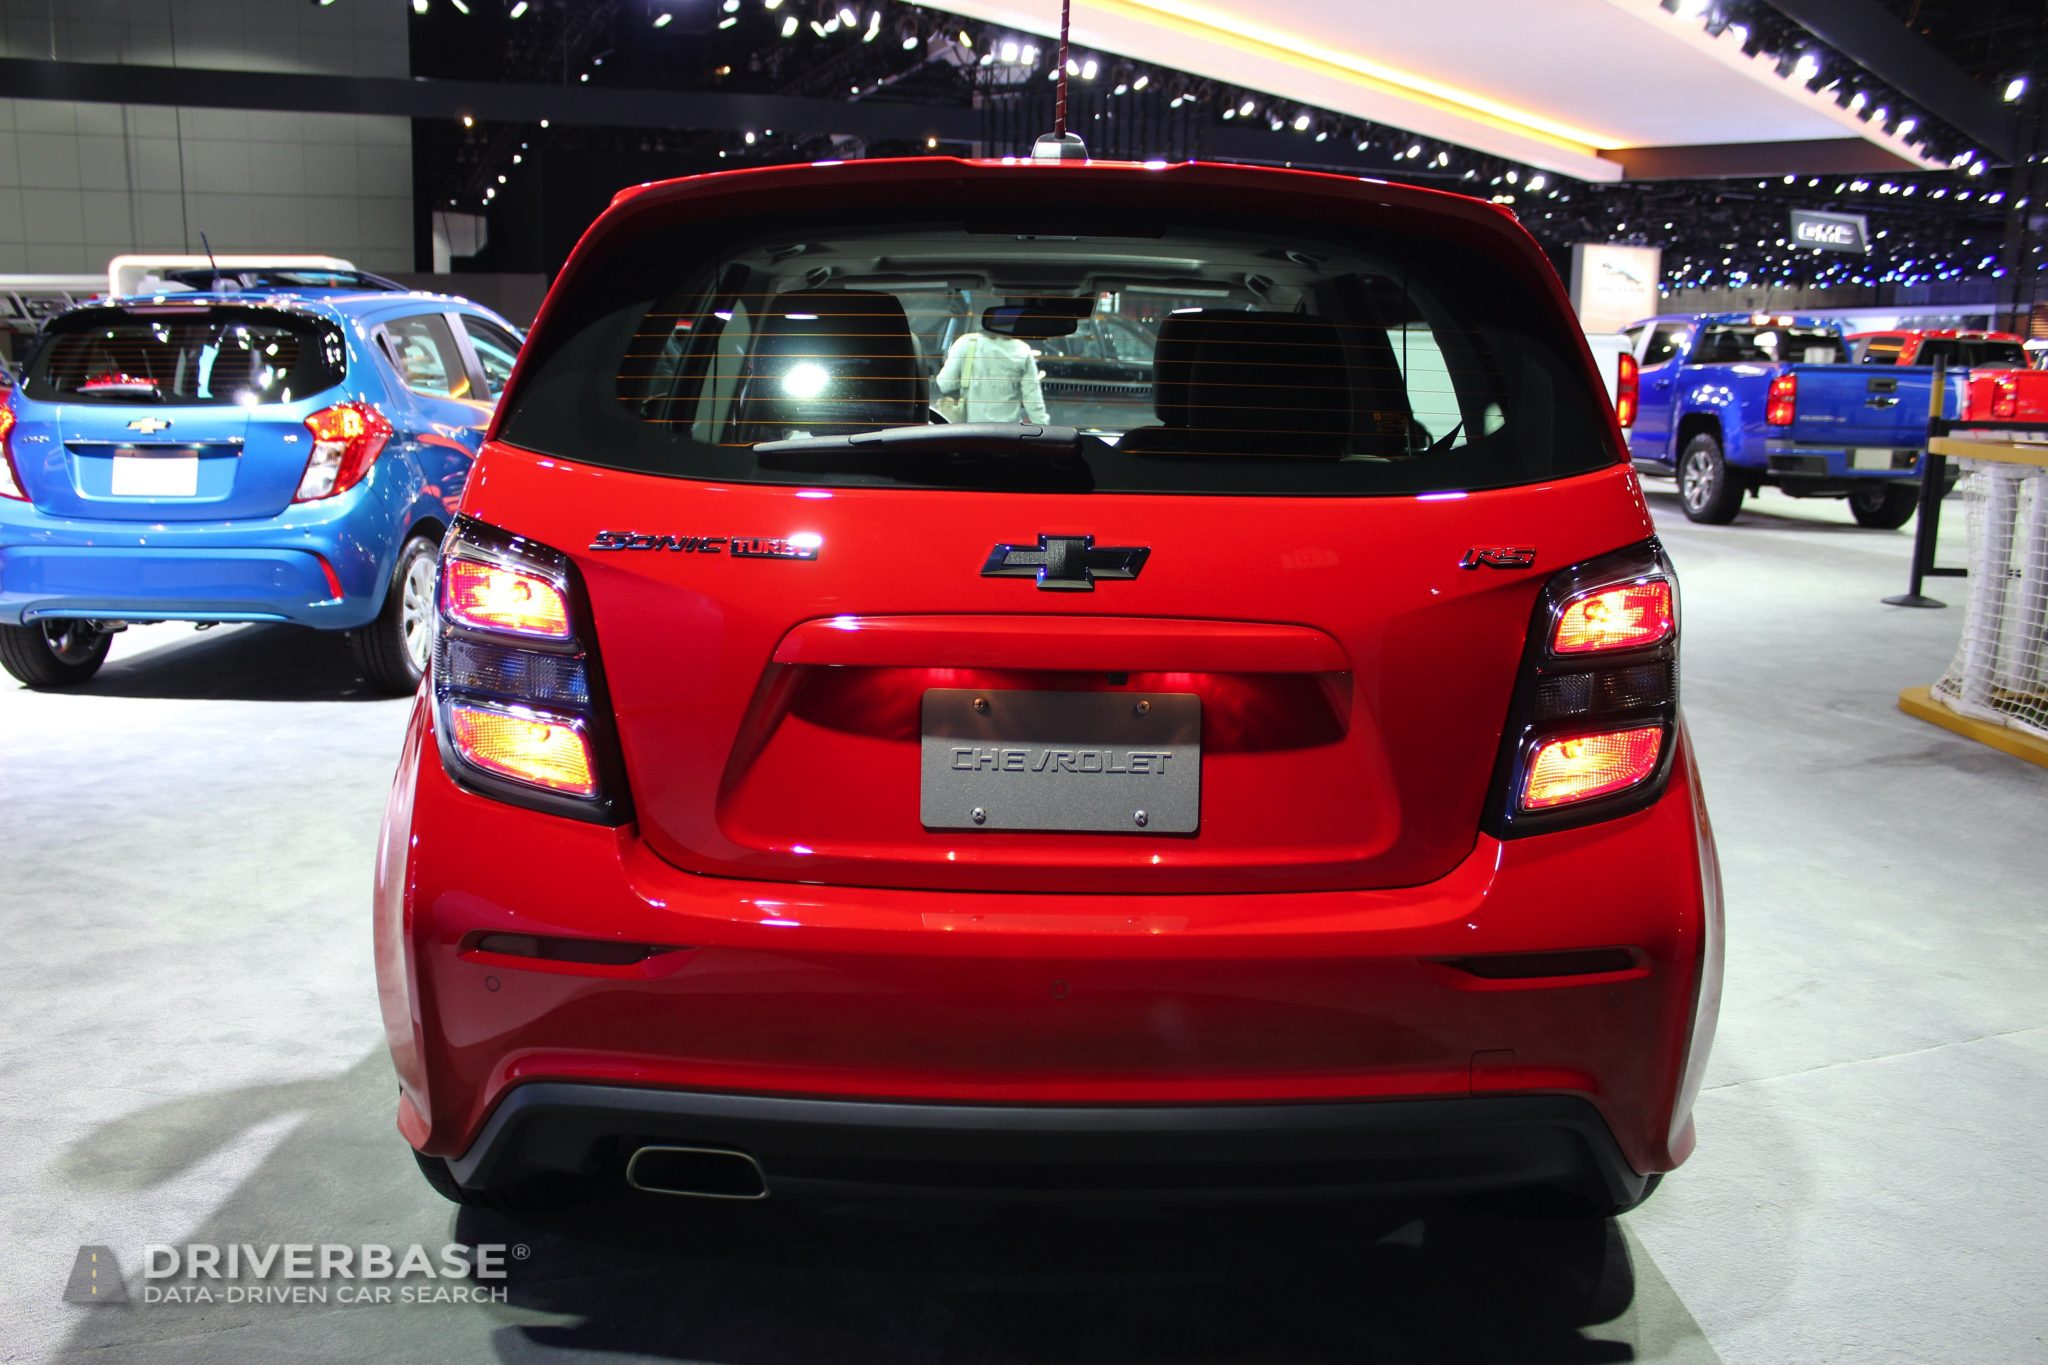 2020 Chevrolet Sonic RS at the 2019 Los Angeles Auto Show